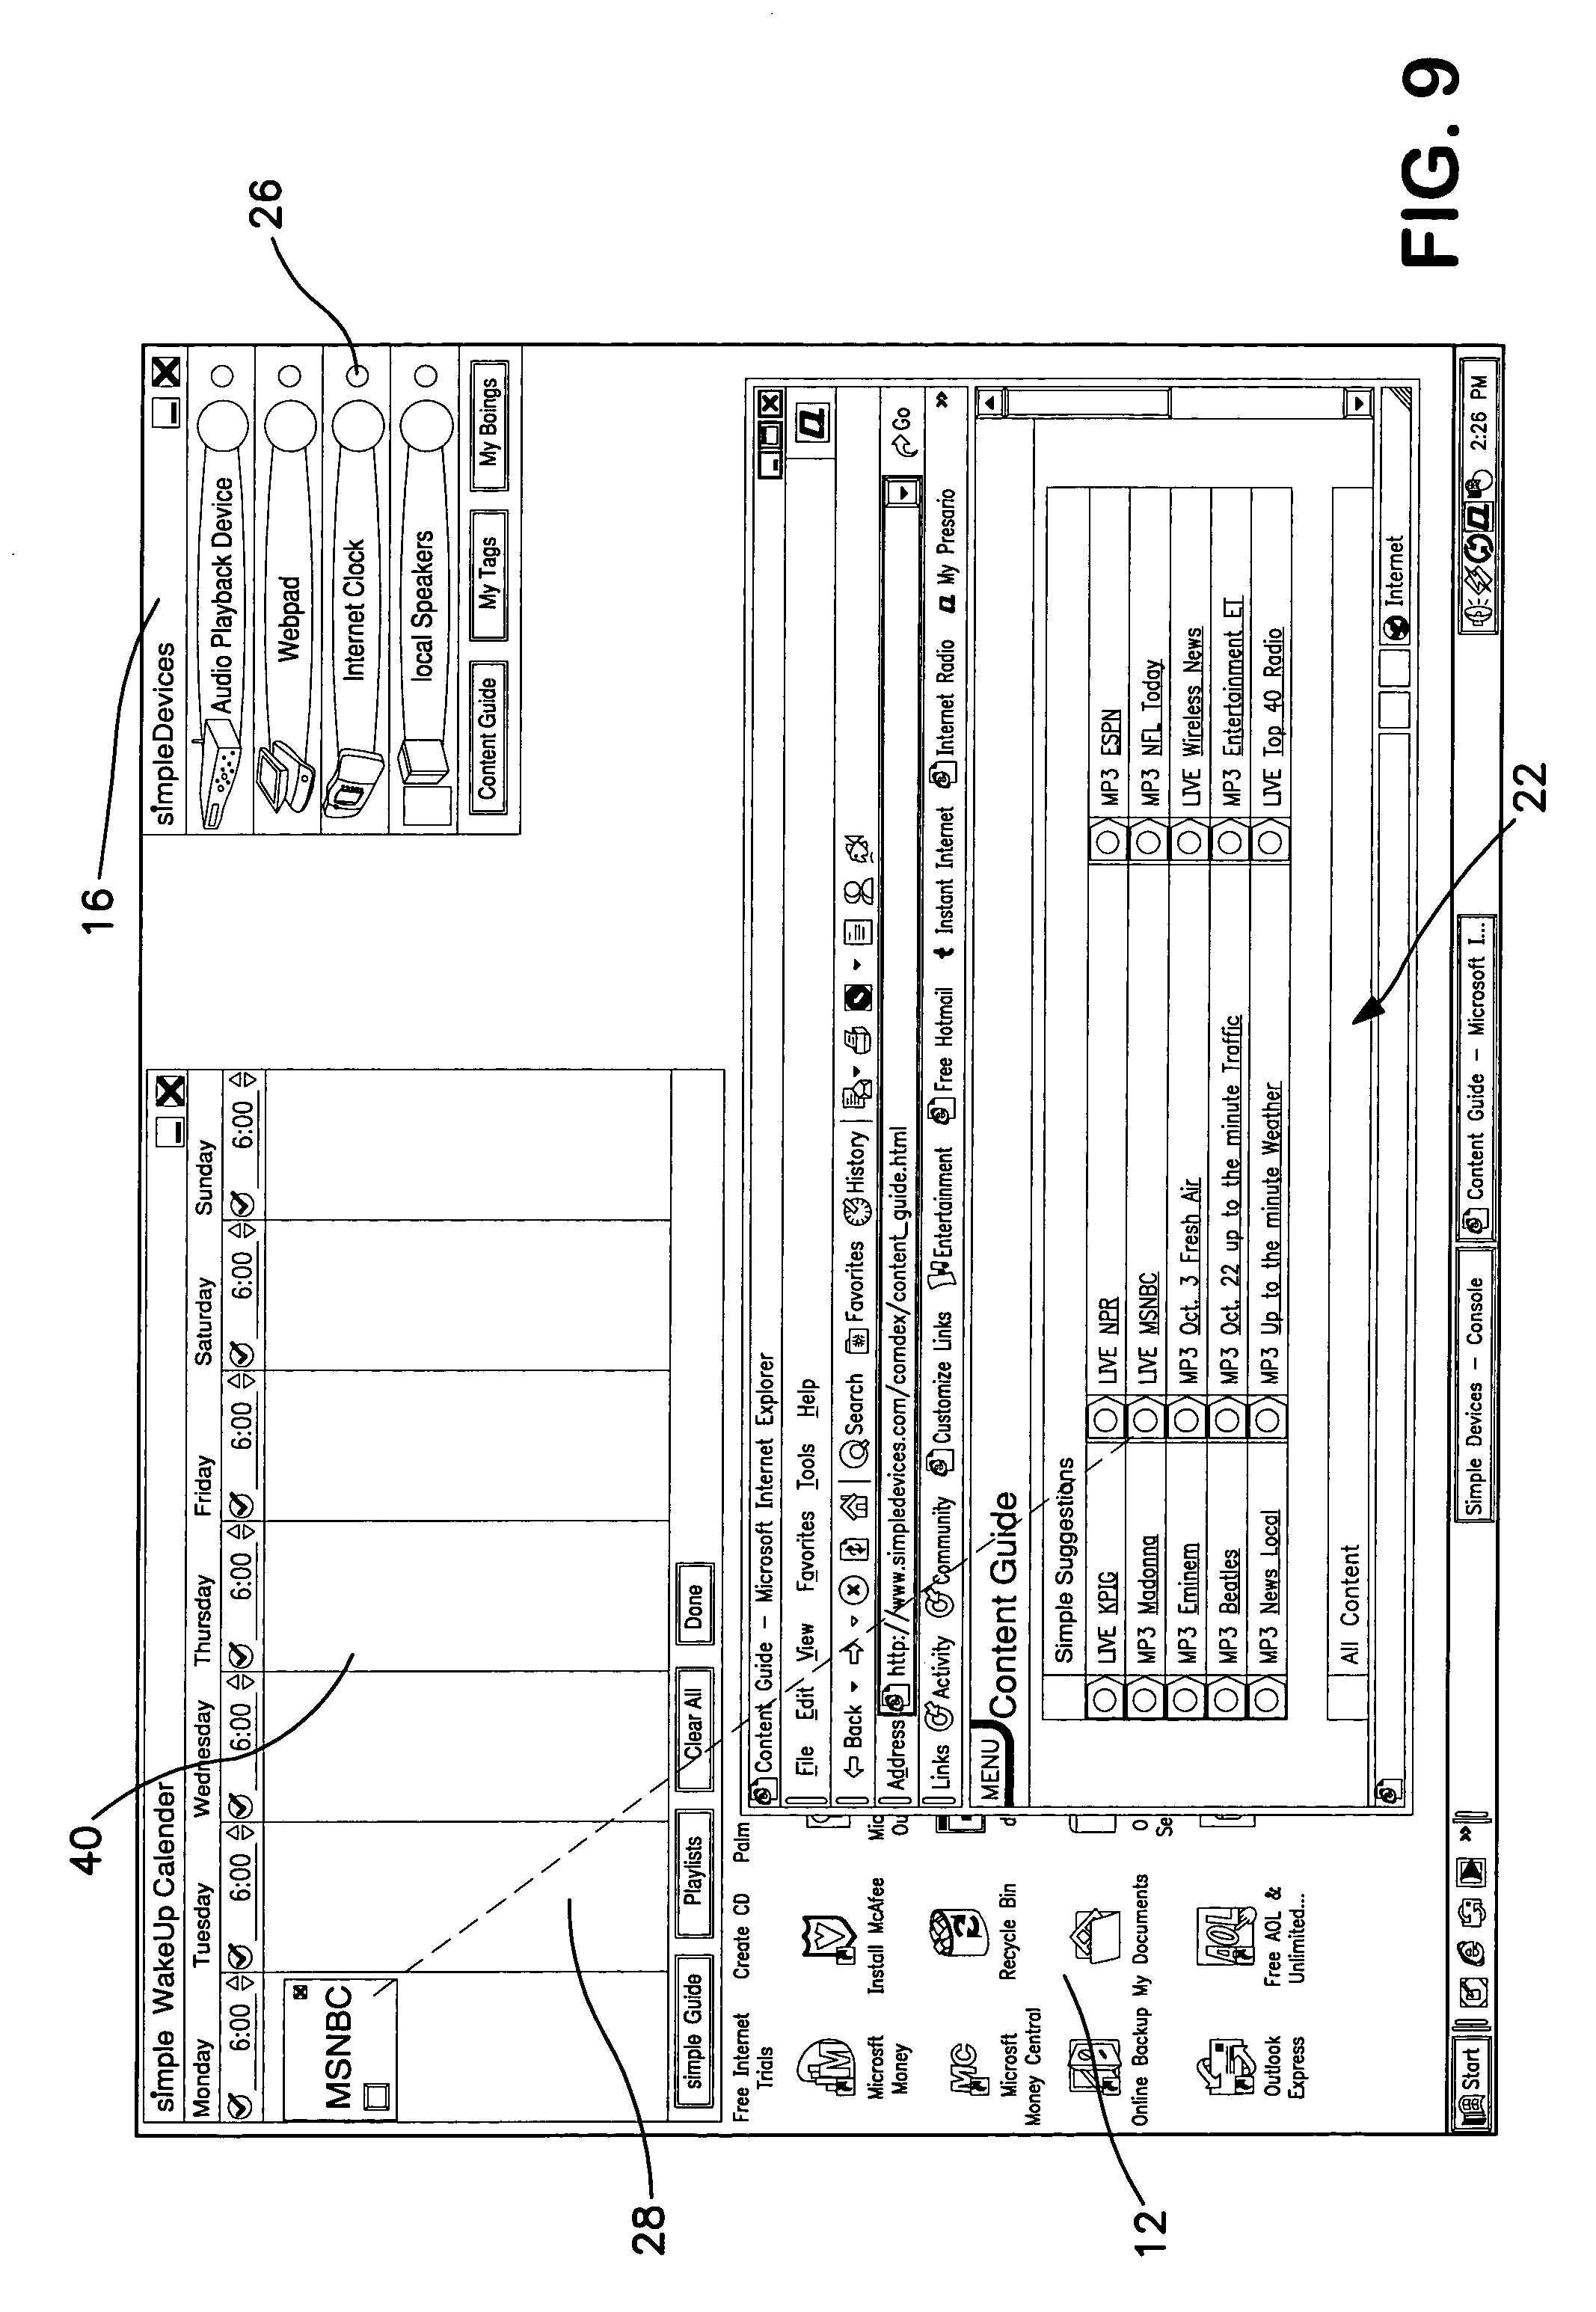 Patent Us 7130616 B2 Diagram Likewise Cable Modem Router Also At T Wireless U Verse